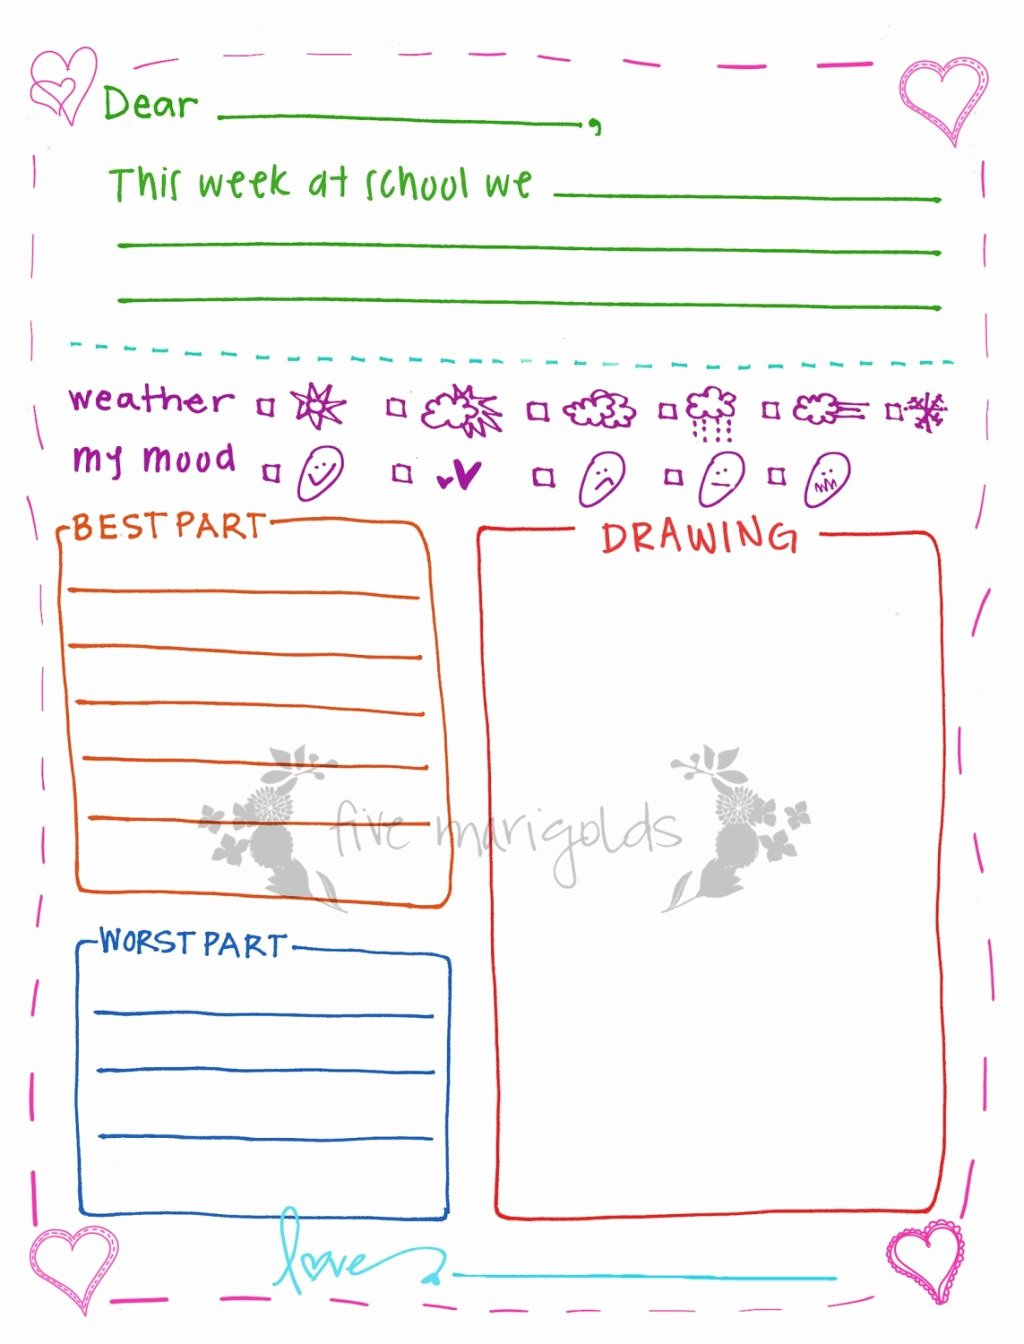 Pen Pal Letter Template Lovely Free Printable Letter Writing Templates for Grandma Pen